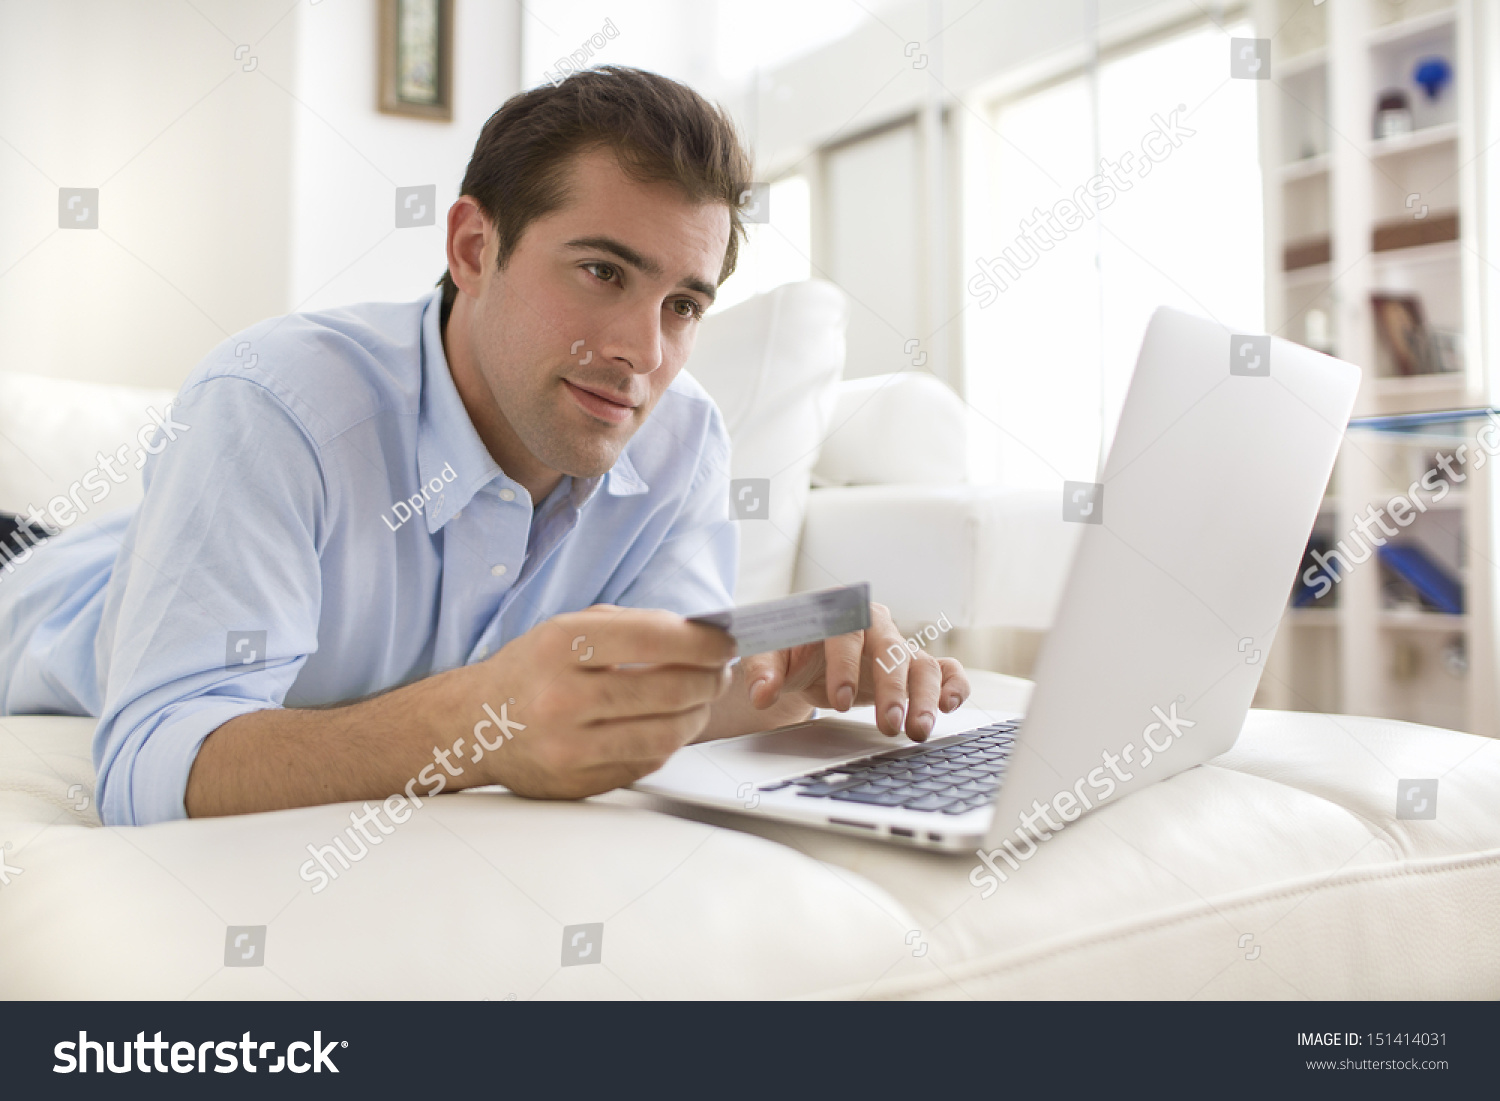 Man Using Credit Card And Laptop, Shopping On Lineindoor. Trading Options For Dummies Download. Alarms For Windows And Doors. Hospitality Management Course Description. Men Hair Removal Laser Home Wireless Security. Careers In Television Production. Dodge Dealers Washington Beijing Jun An Hotel. Best Program For Remote Access. Psychology Graduate School Requirements